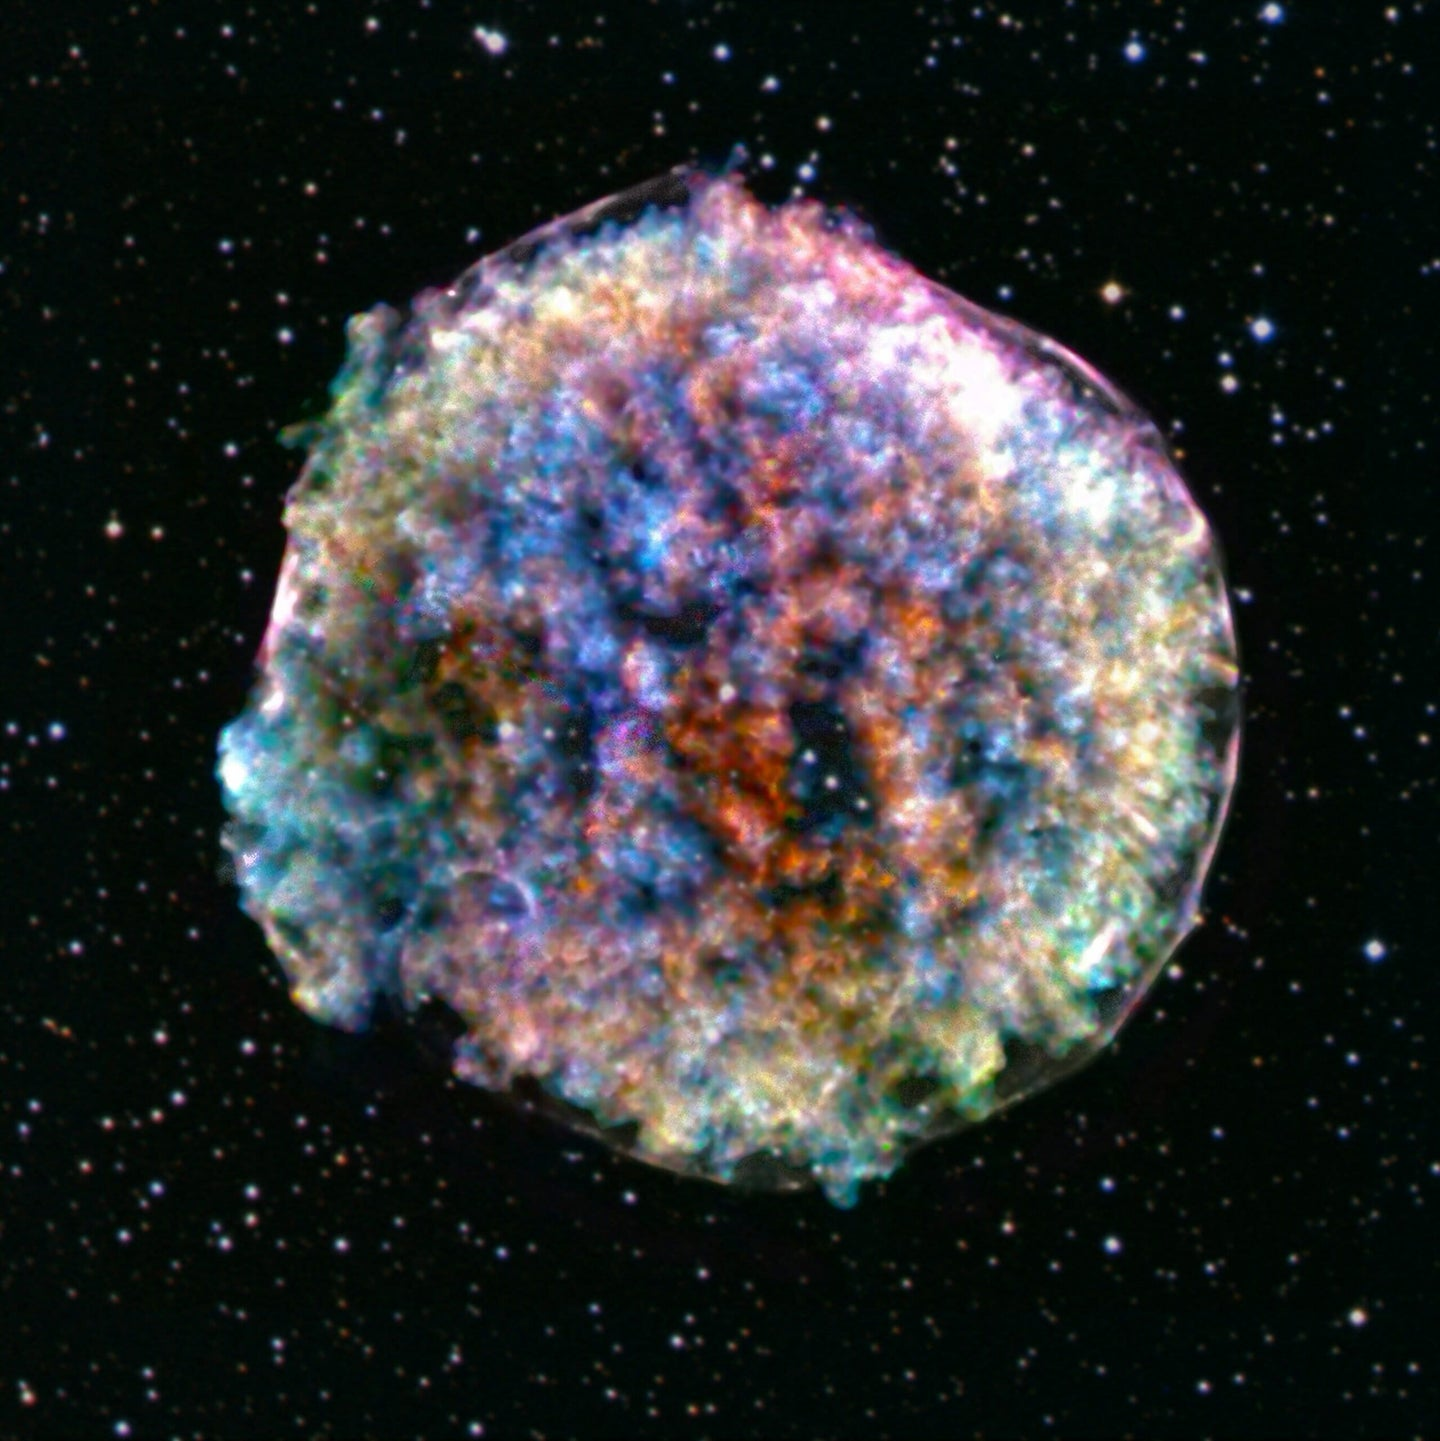 This fluffy ball contains the story of the universe